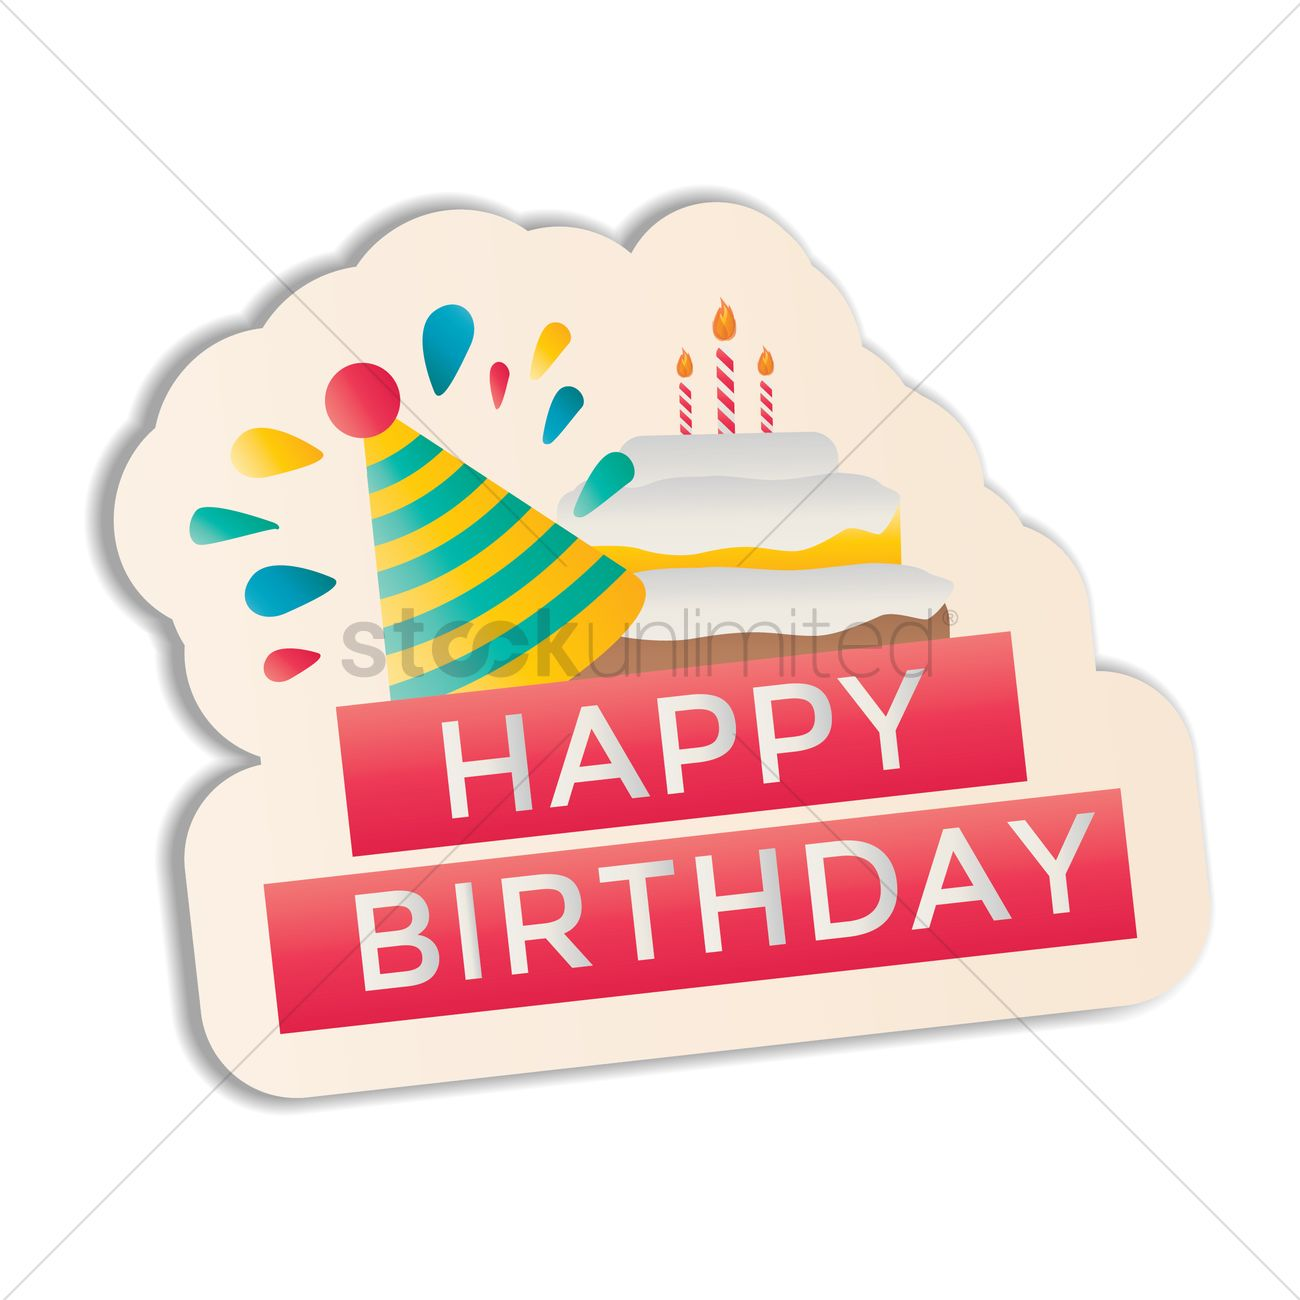 Happy birthday sticker vector graphic